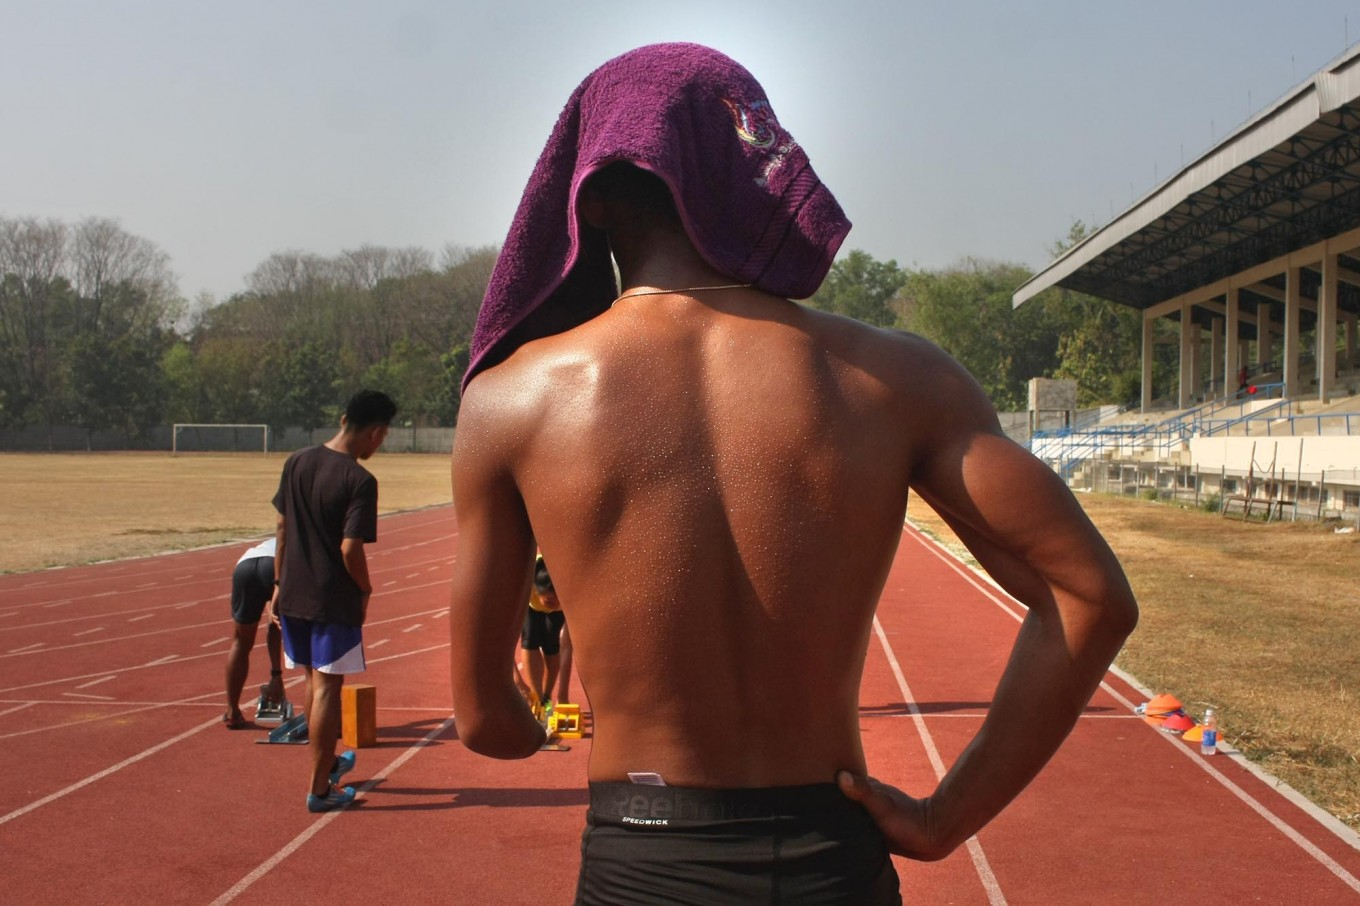 Track-and- field athlete Rijal Bagus, covers his head from the scorching sun on the track at the national training center in Surakarta, Central Java, during the lead-up to the 2017 ASEAN Para Games. JP/Maksum Nur Fauzan